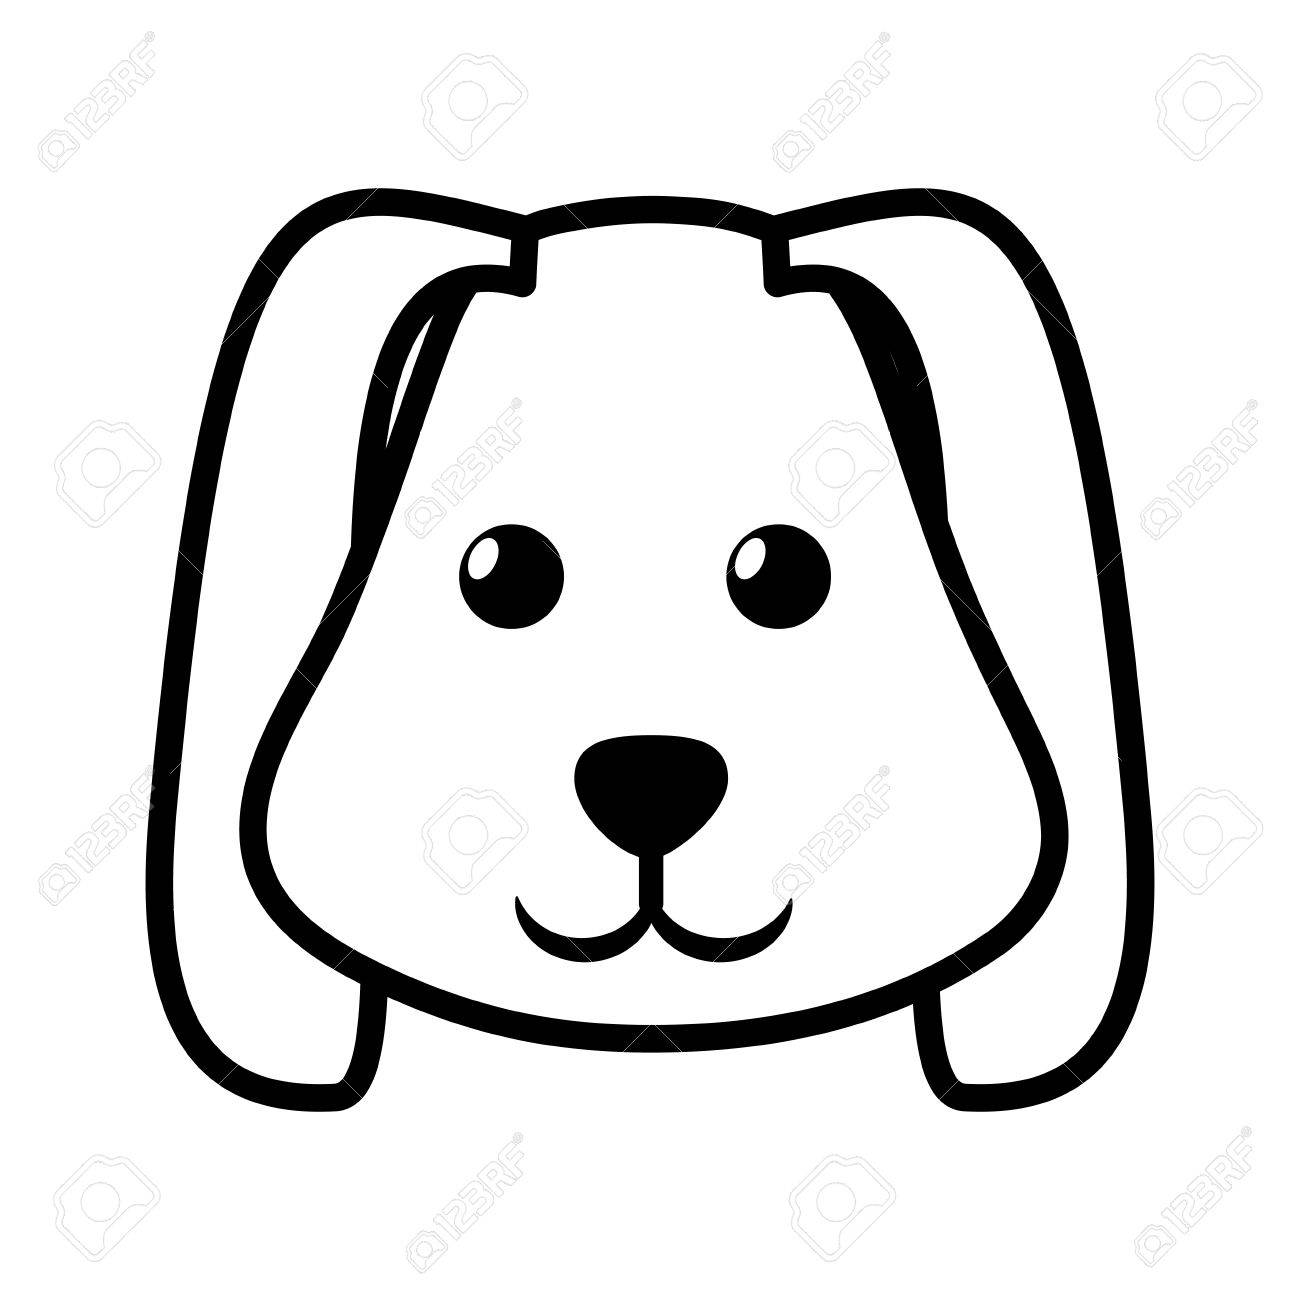 Free Dog Face Clipart Black And White.